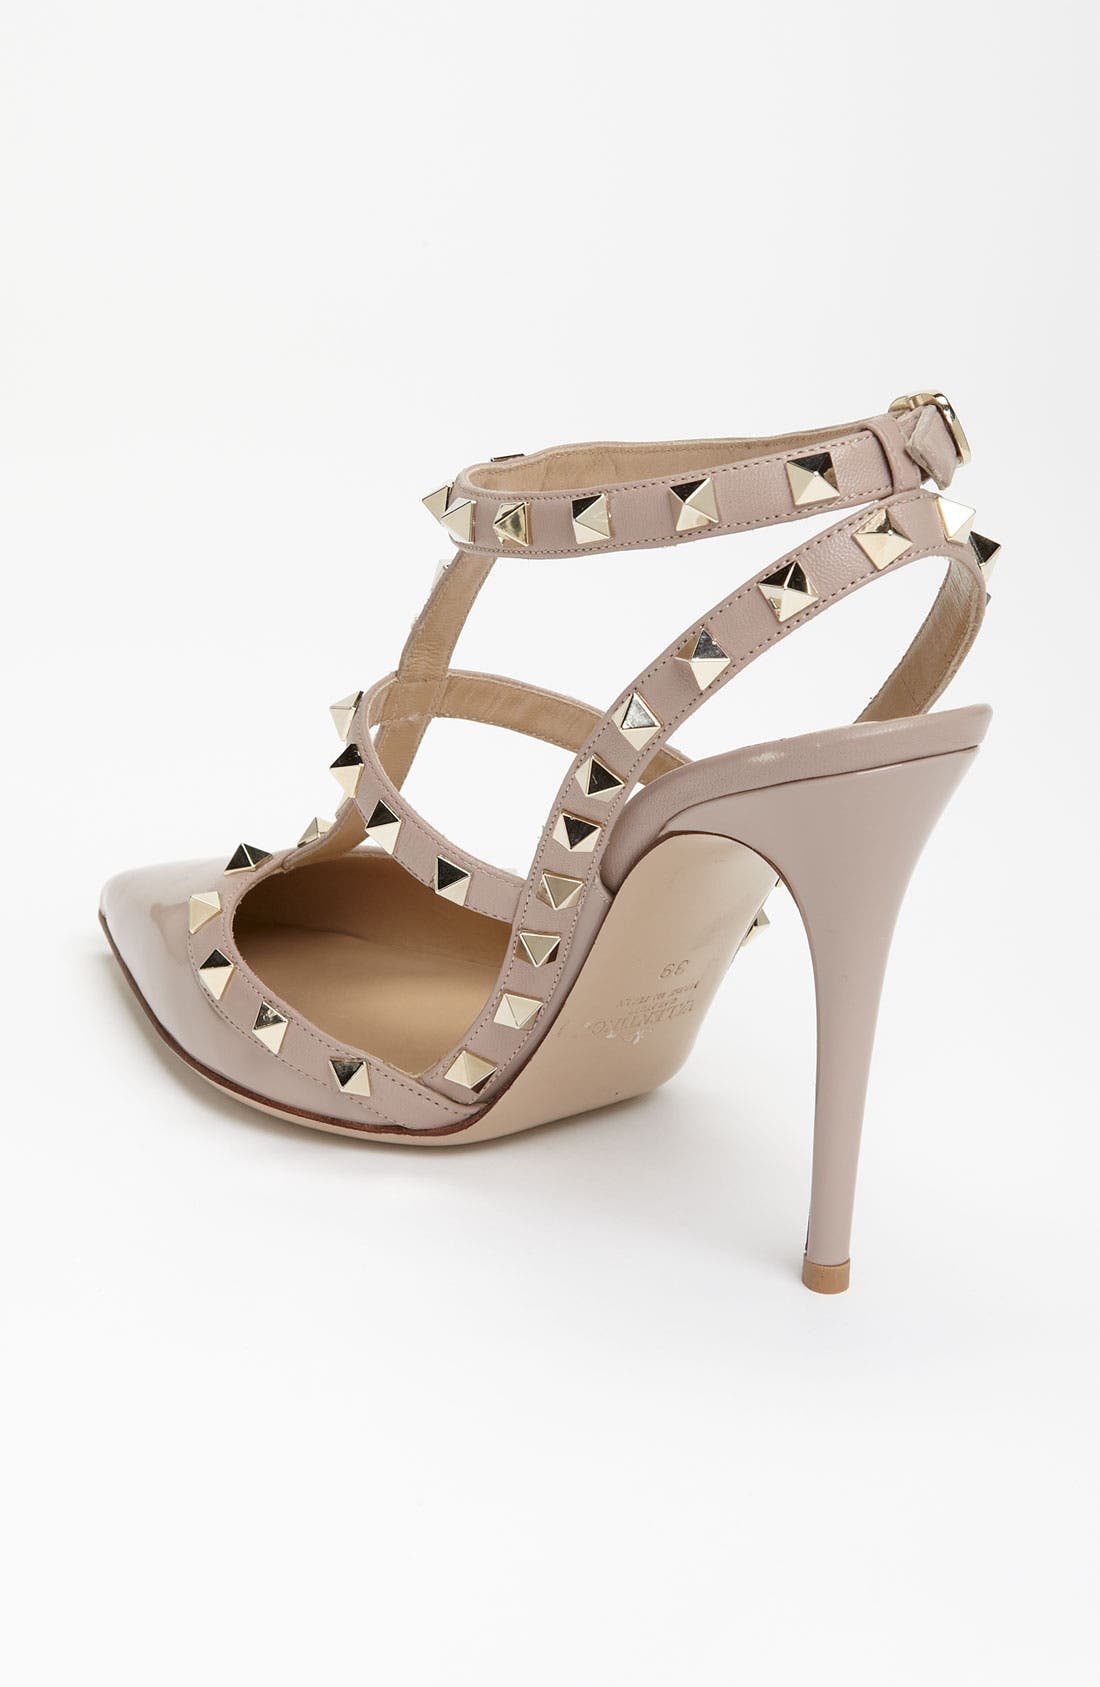 Valentino sandals shoes price - Valentino Sandals Shoes Price 11